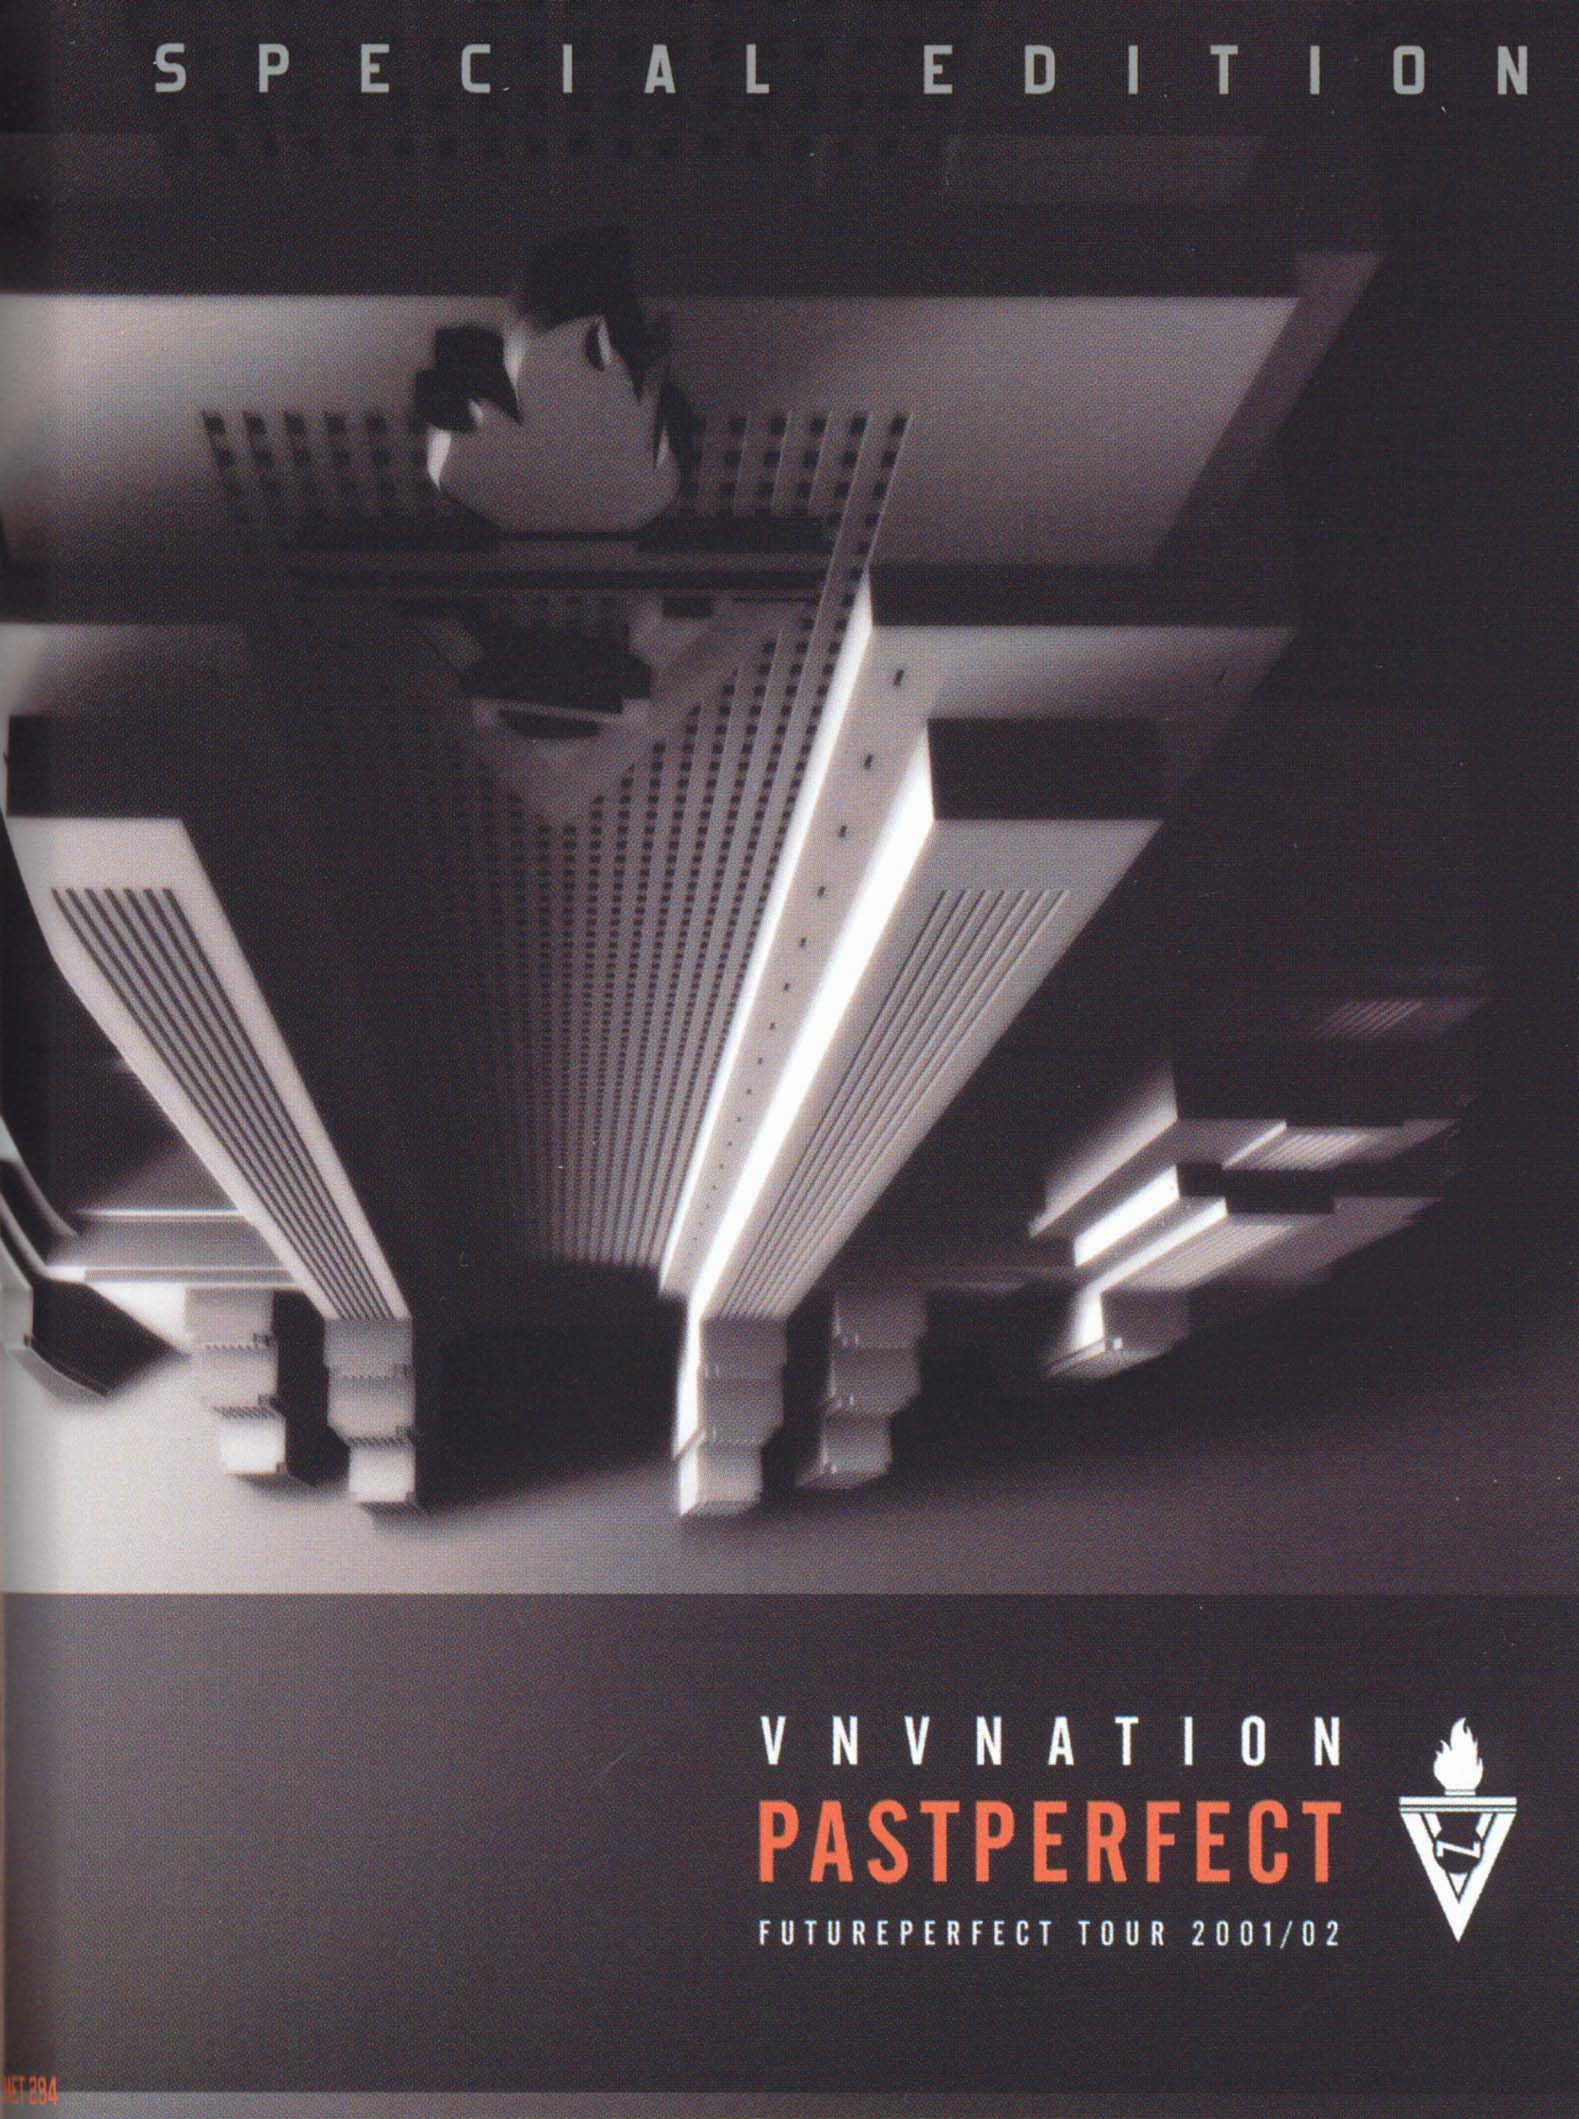 VNV Nation: Pastperfect